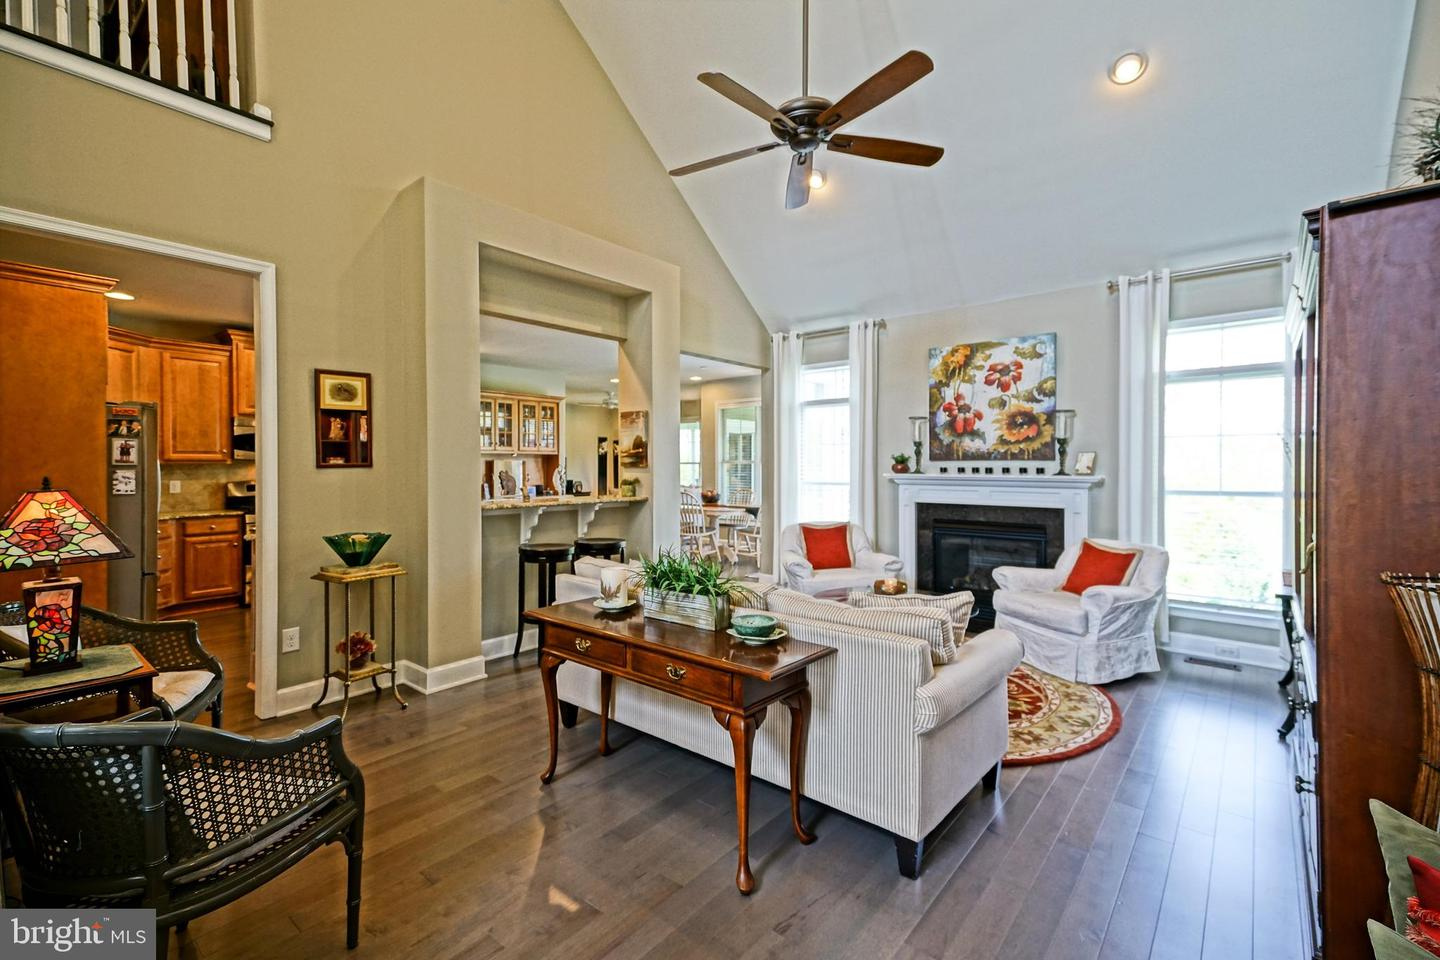 DESU139128-301667381001-2019-08-05-10-43-56 35222 Overfalls Dr N | Lewes, DE Real Estate For Sale | MLS# Desu139128  - Lee Ann Group